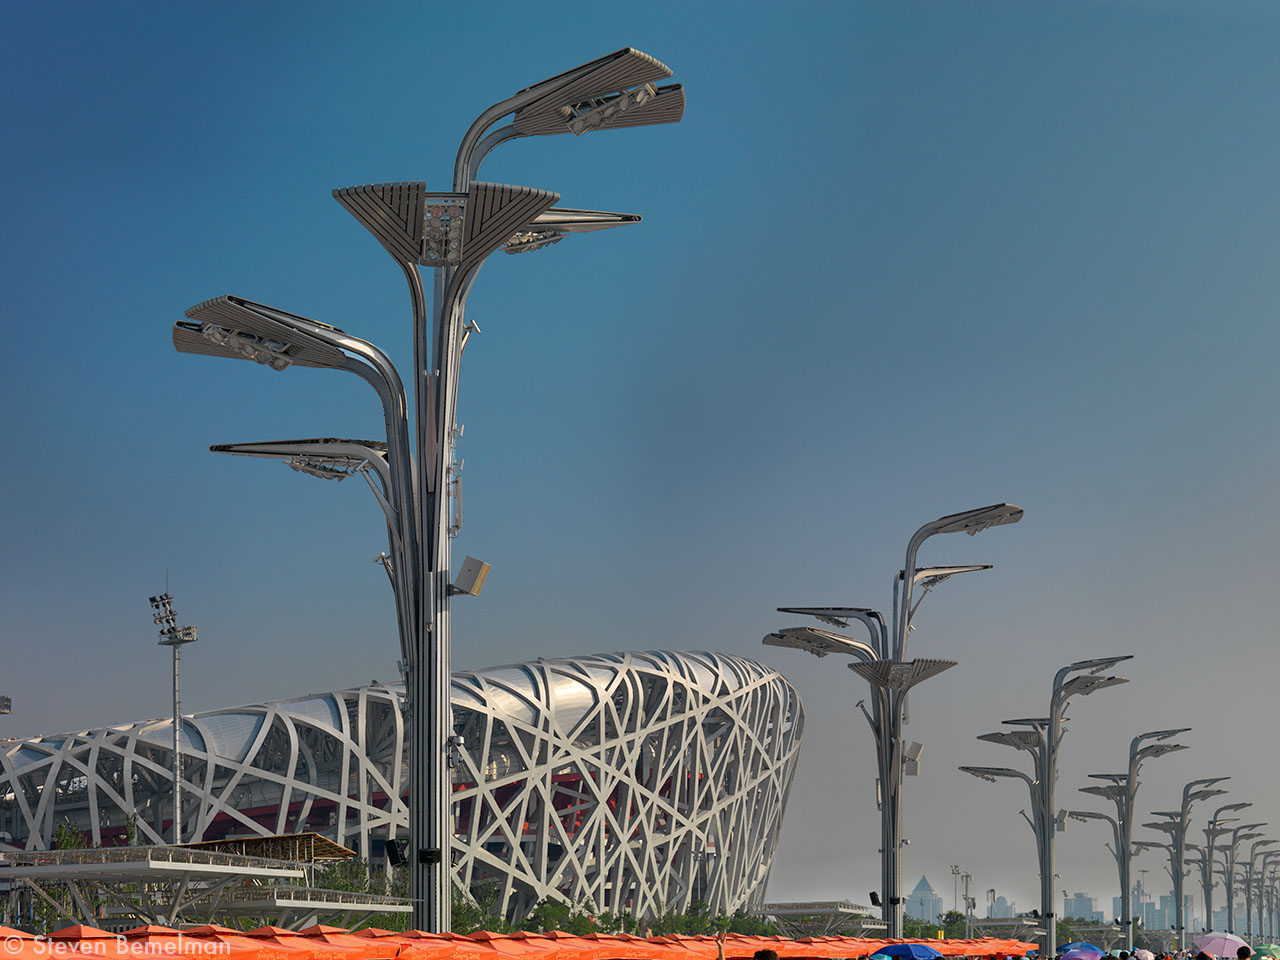 Beijing National Stadium (Bird's Nest)